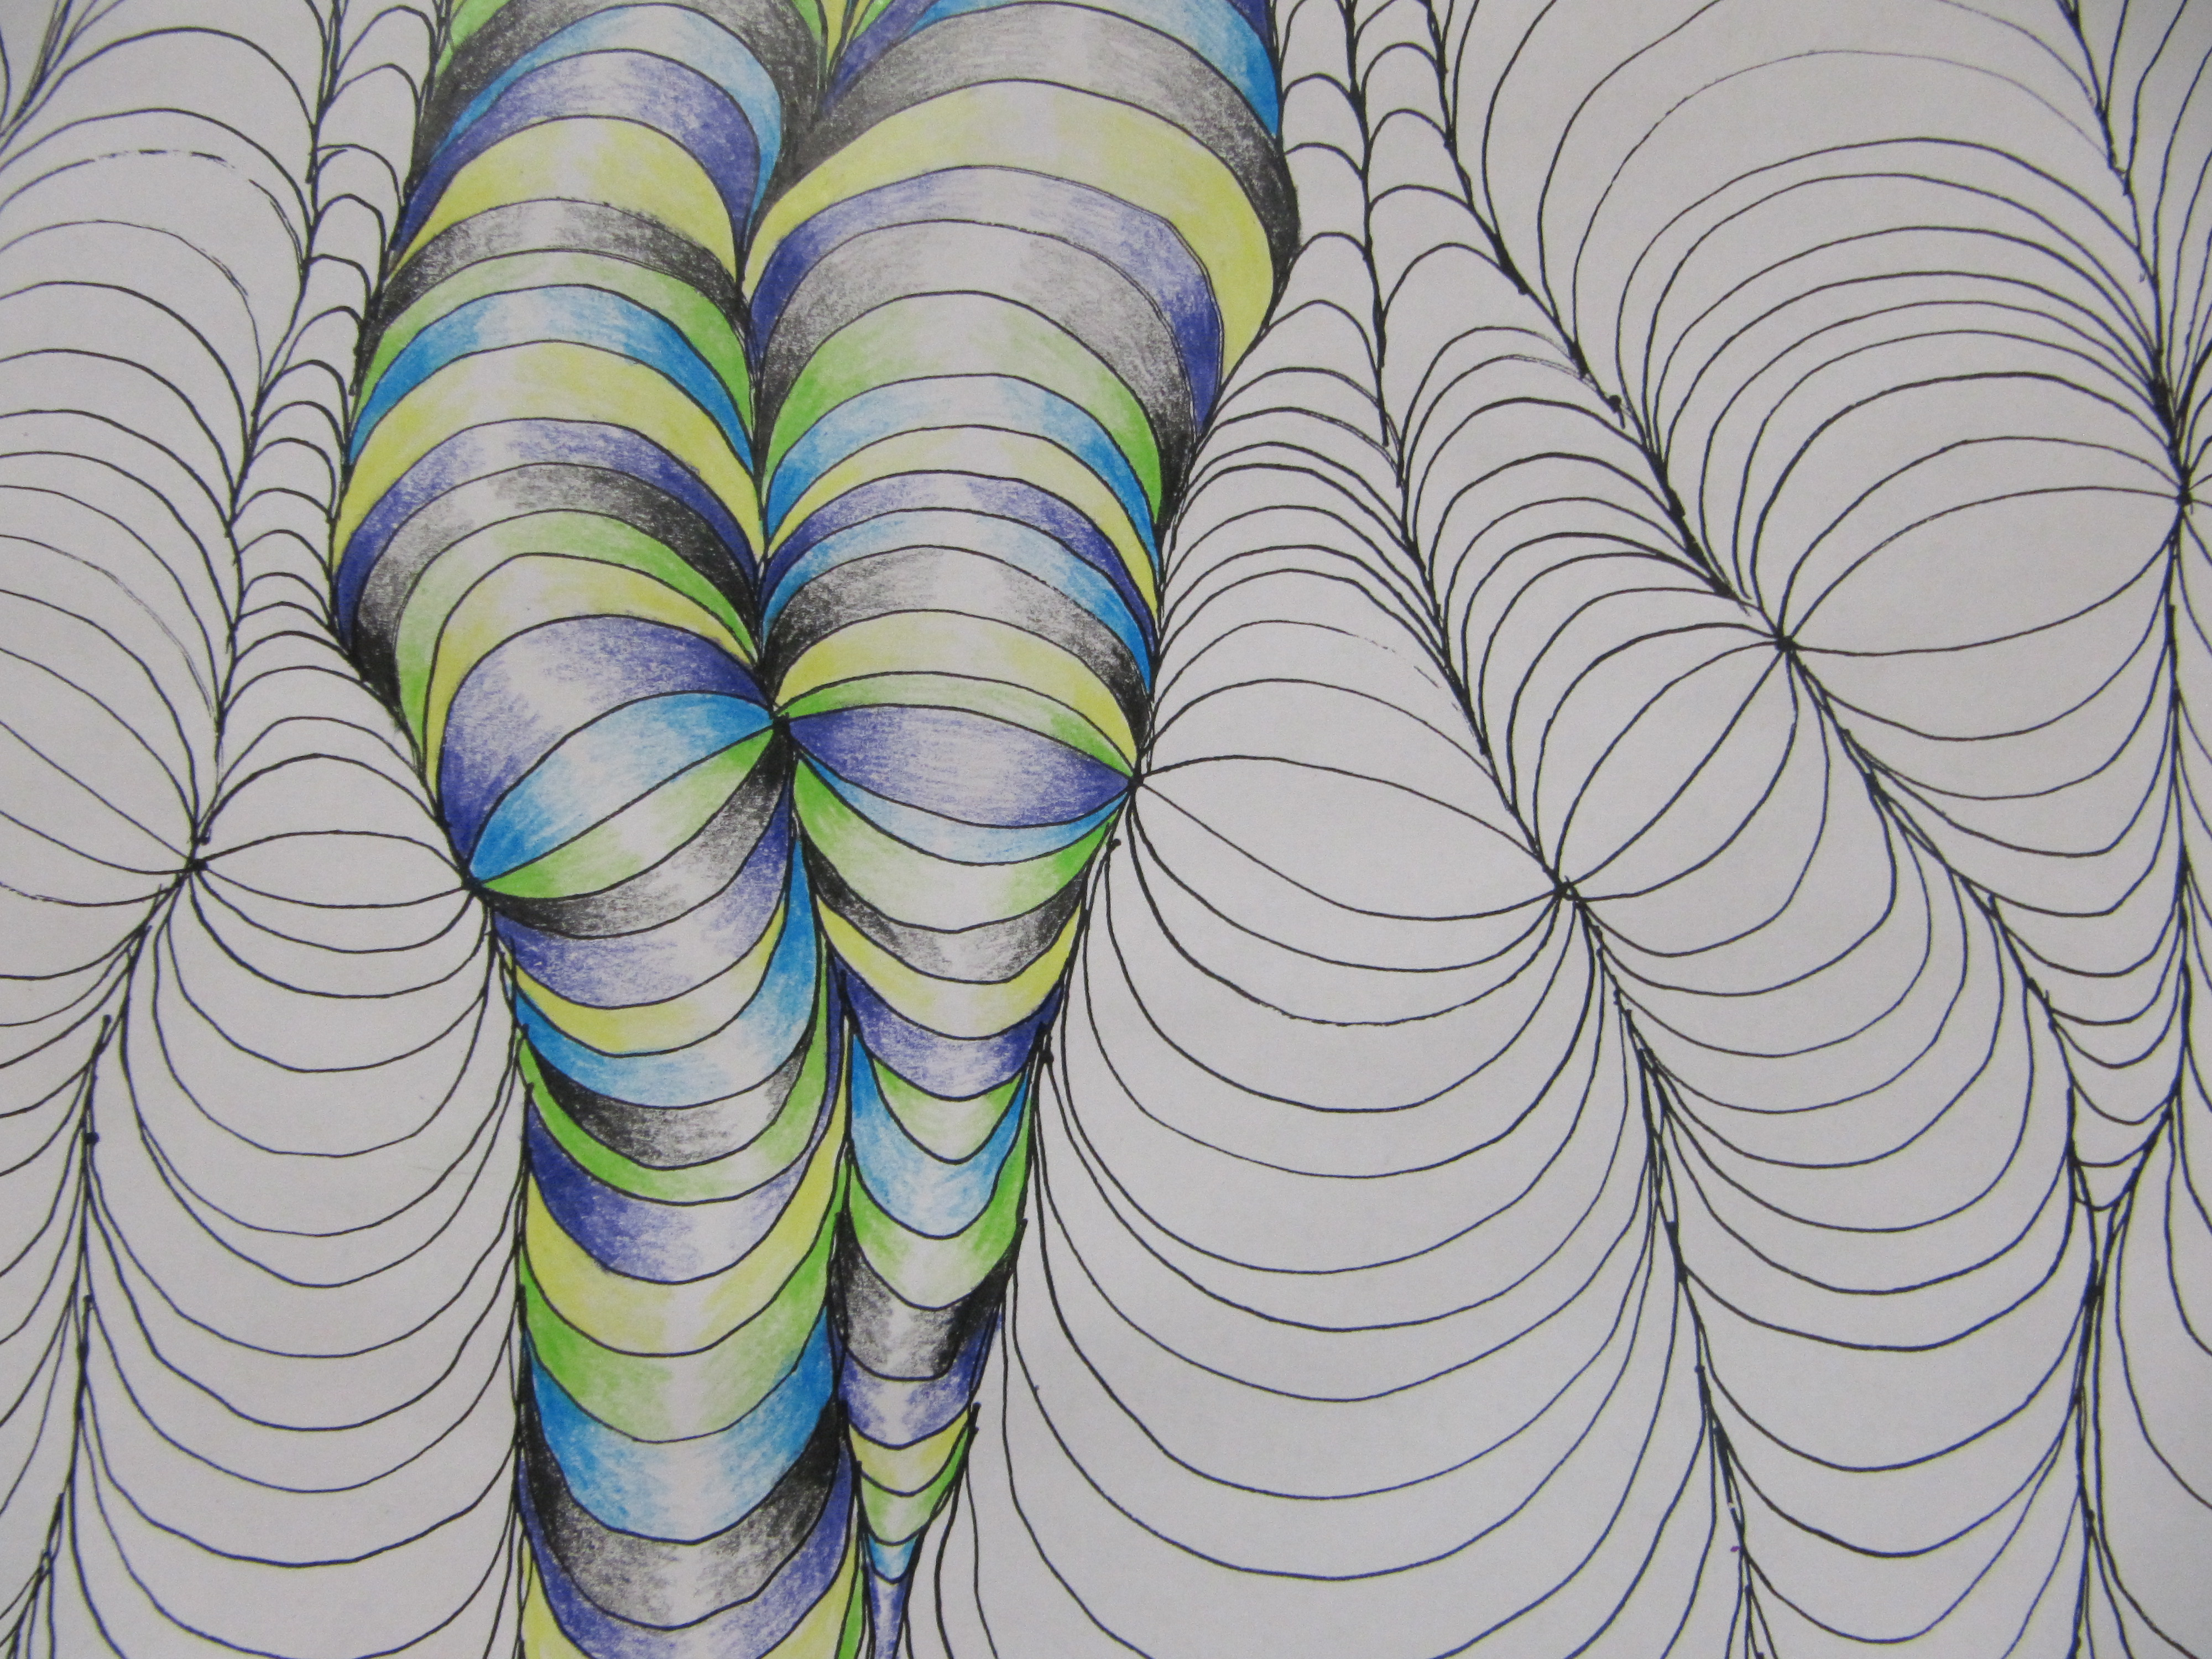 4000x3000 Optical Illusions With Mr. E Gmg Art